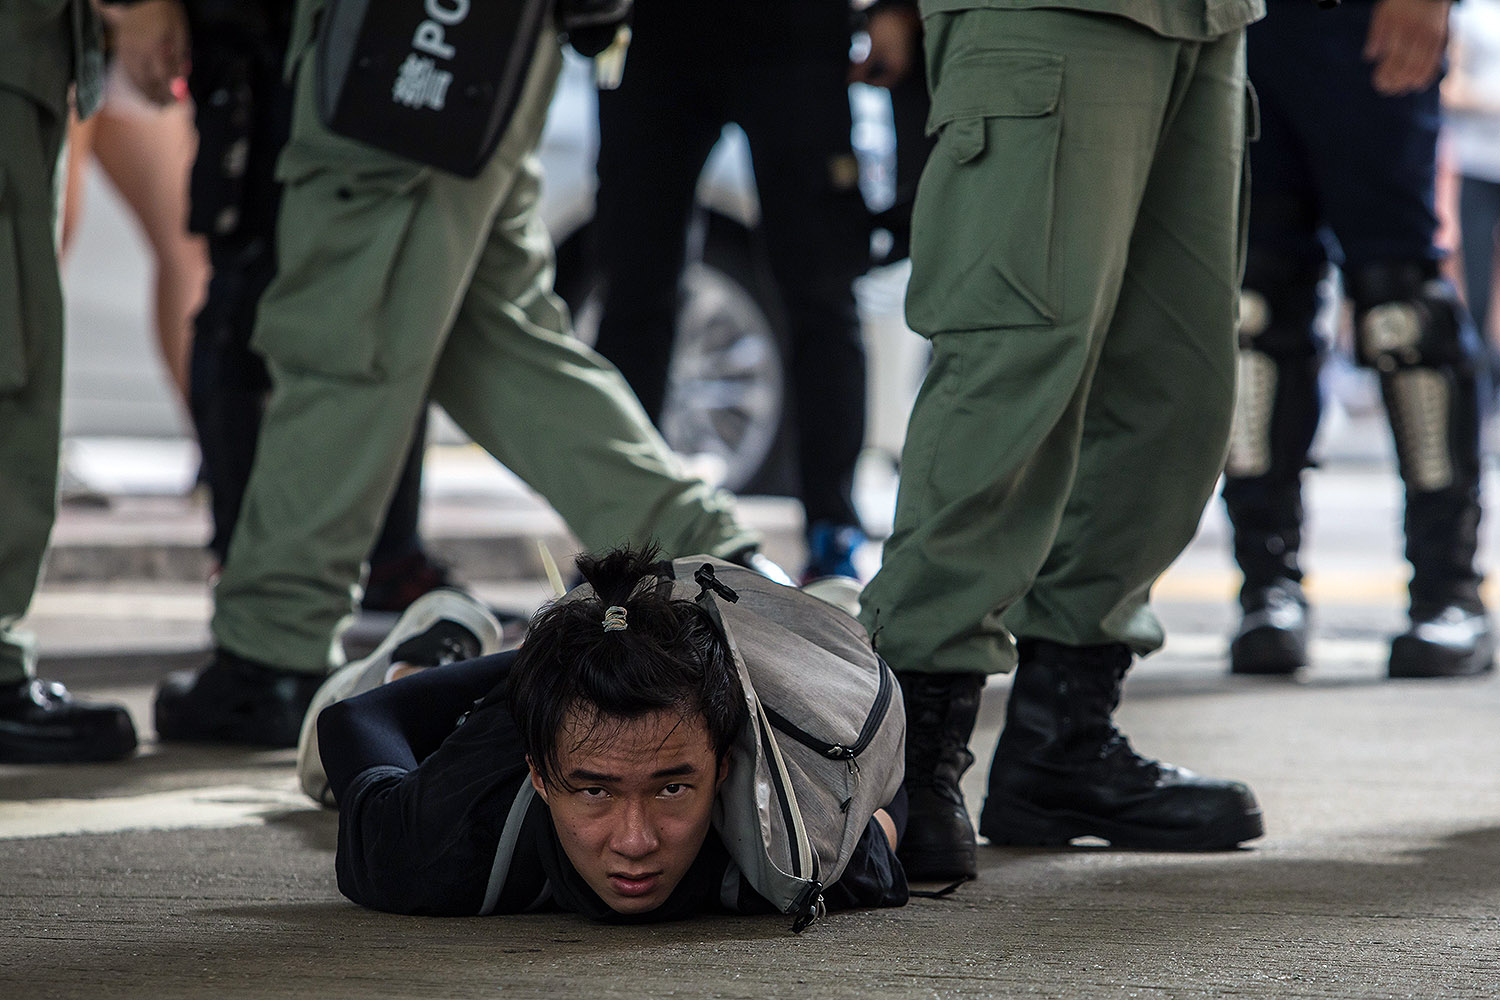 On the 23rd anniversary of Hong Kong's handover from Britain to China, Hong Kong riot police make the first arrests under Beijing's new national security law July 1. DALE DE LA REY/AFP via Getty Images